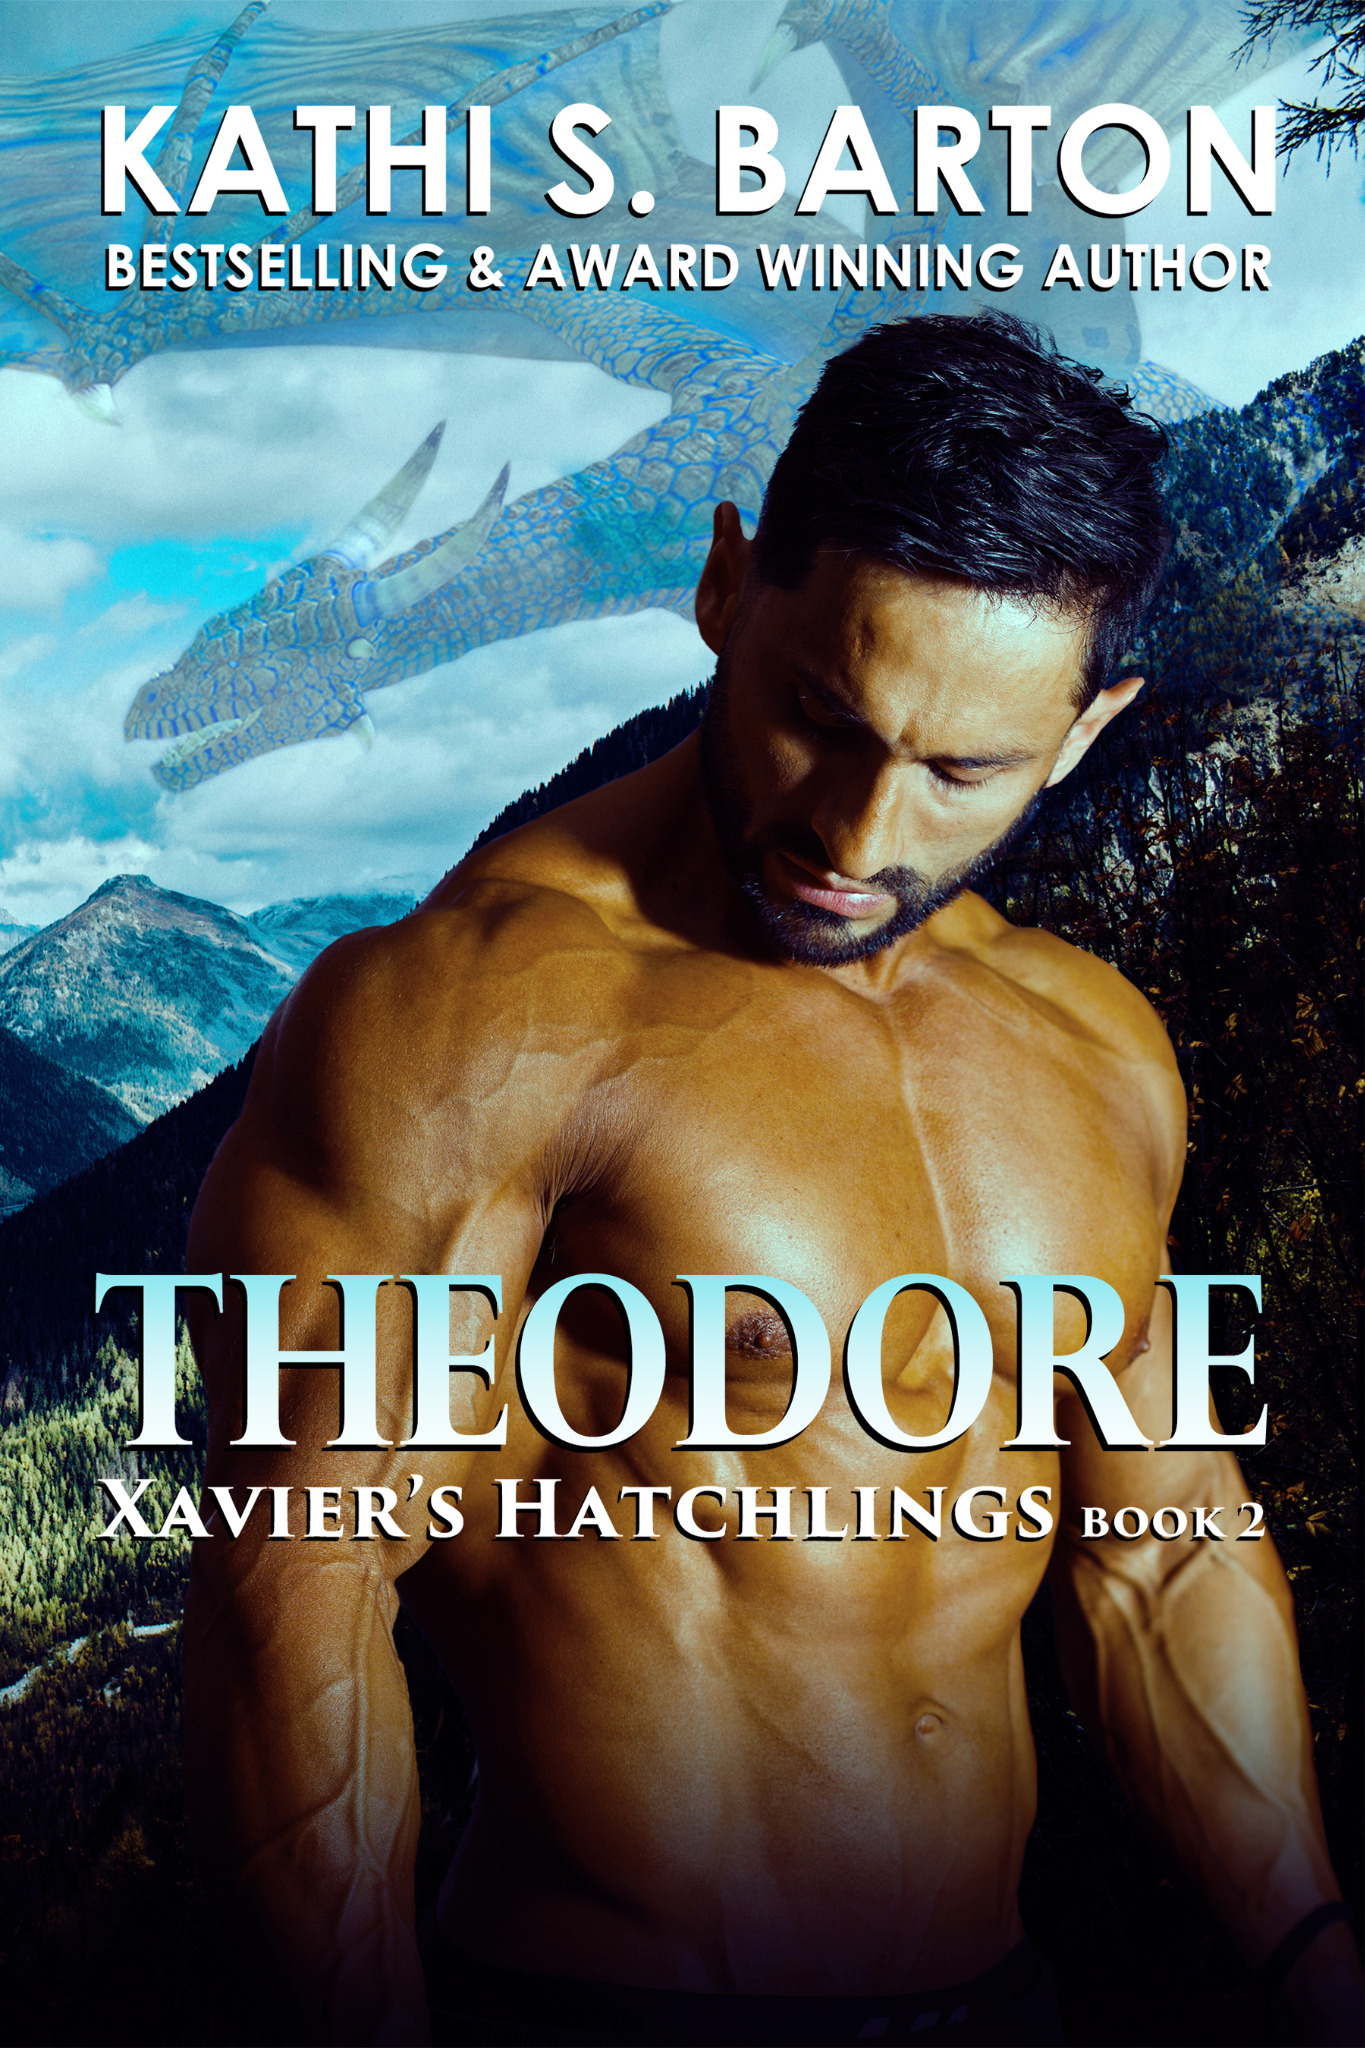 Theodore - Xavier's Hatchlings Book 2